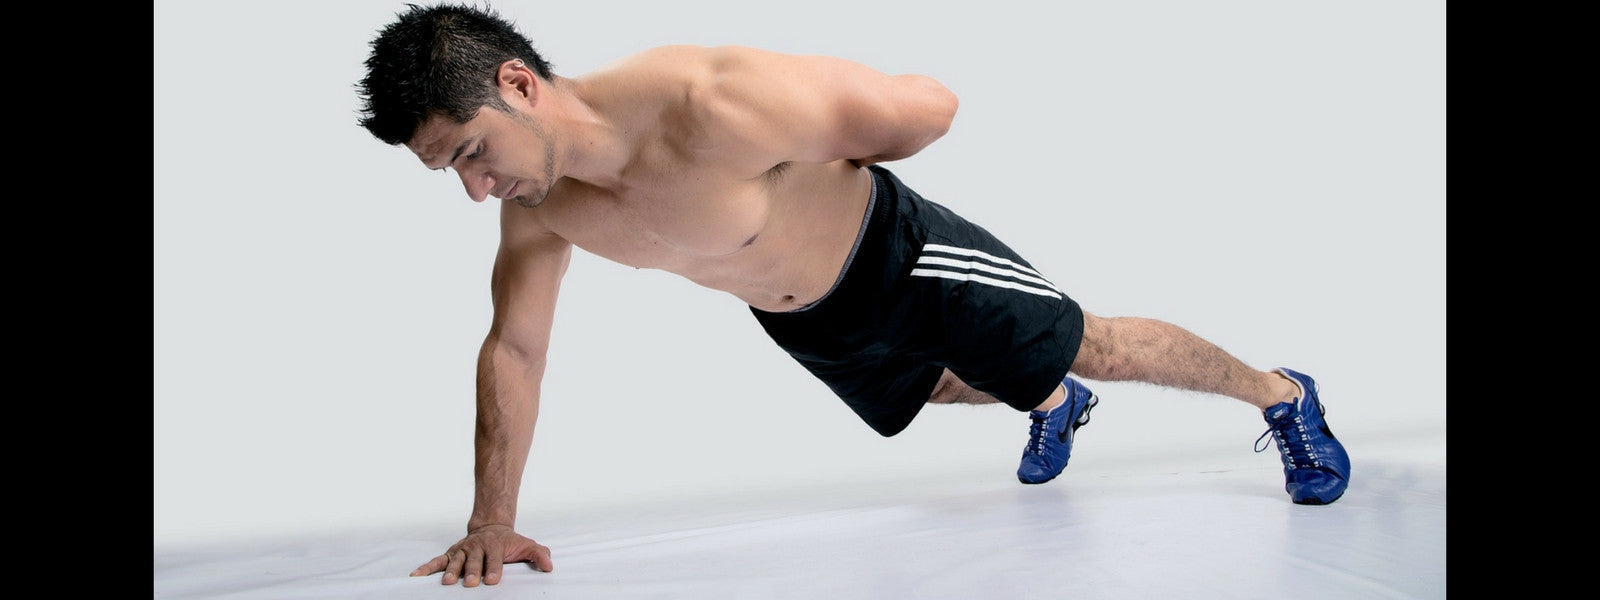 EXTREME PUSH-UPS FOR GREAT ARMS